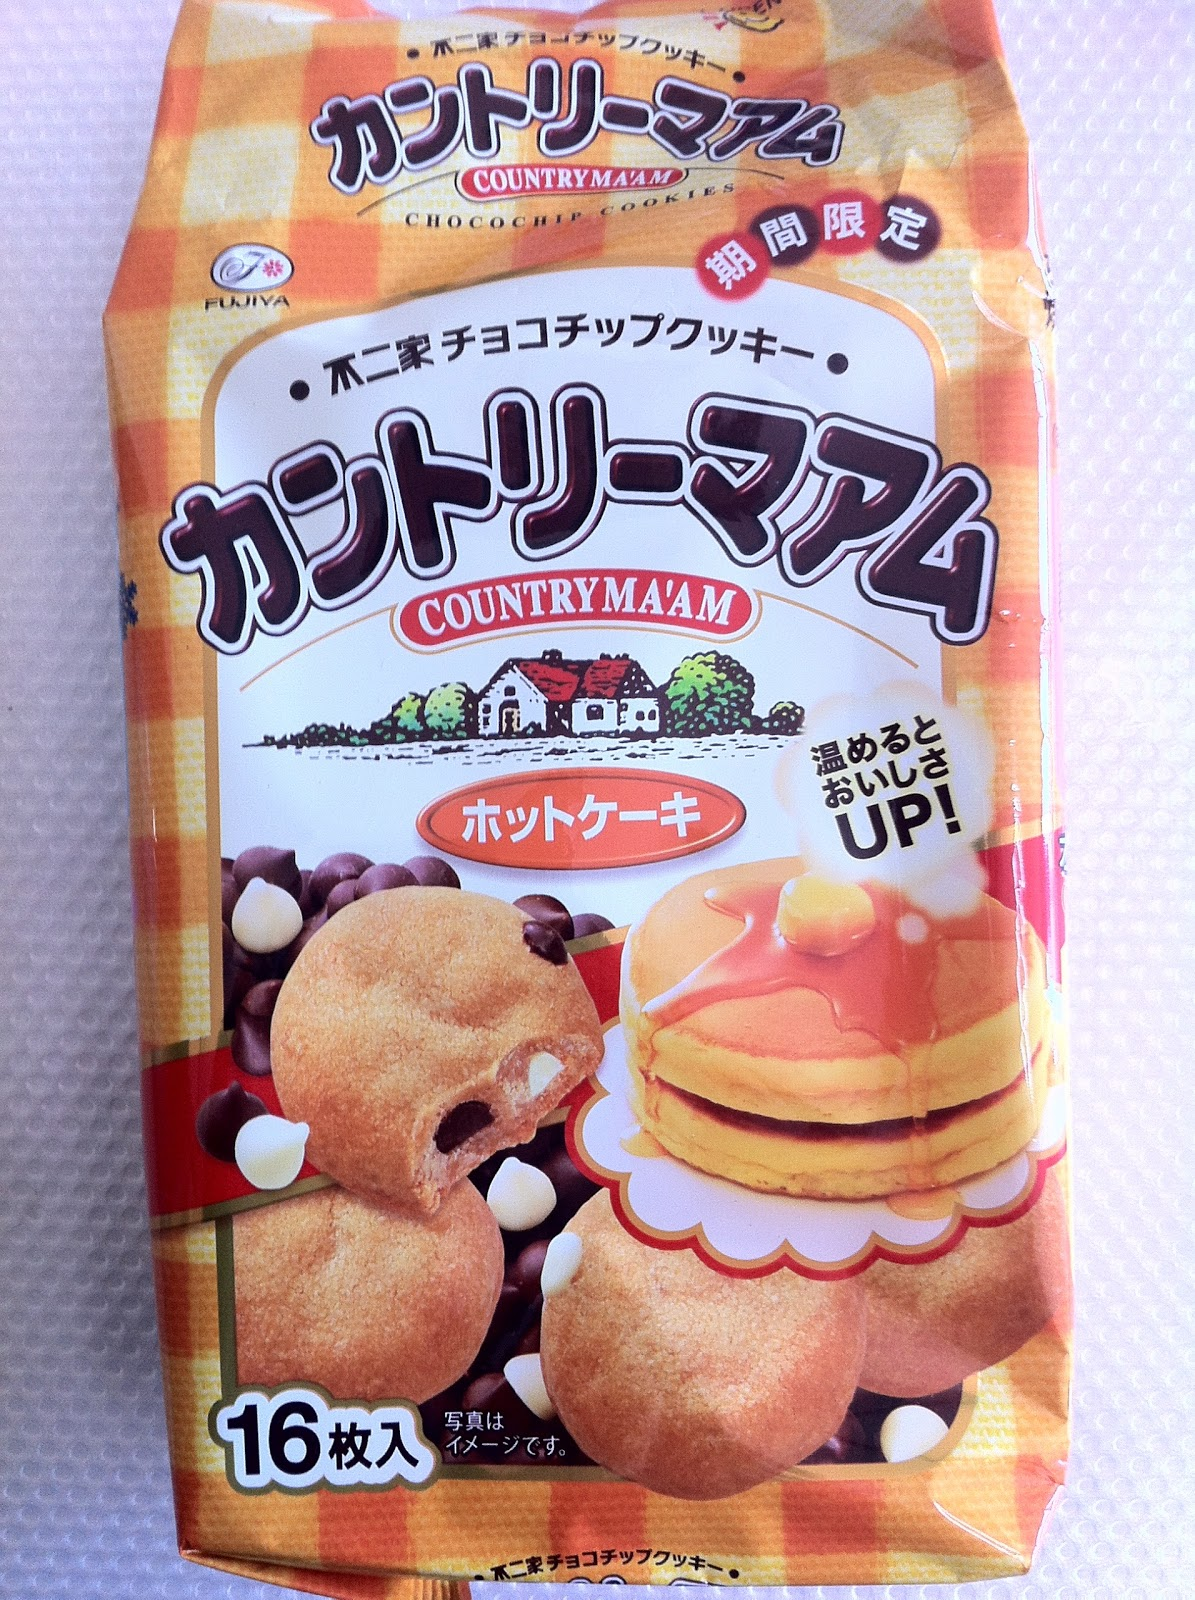 #9: Country Ma'am Pancake-Flavored Choco Chip Cookies